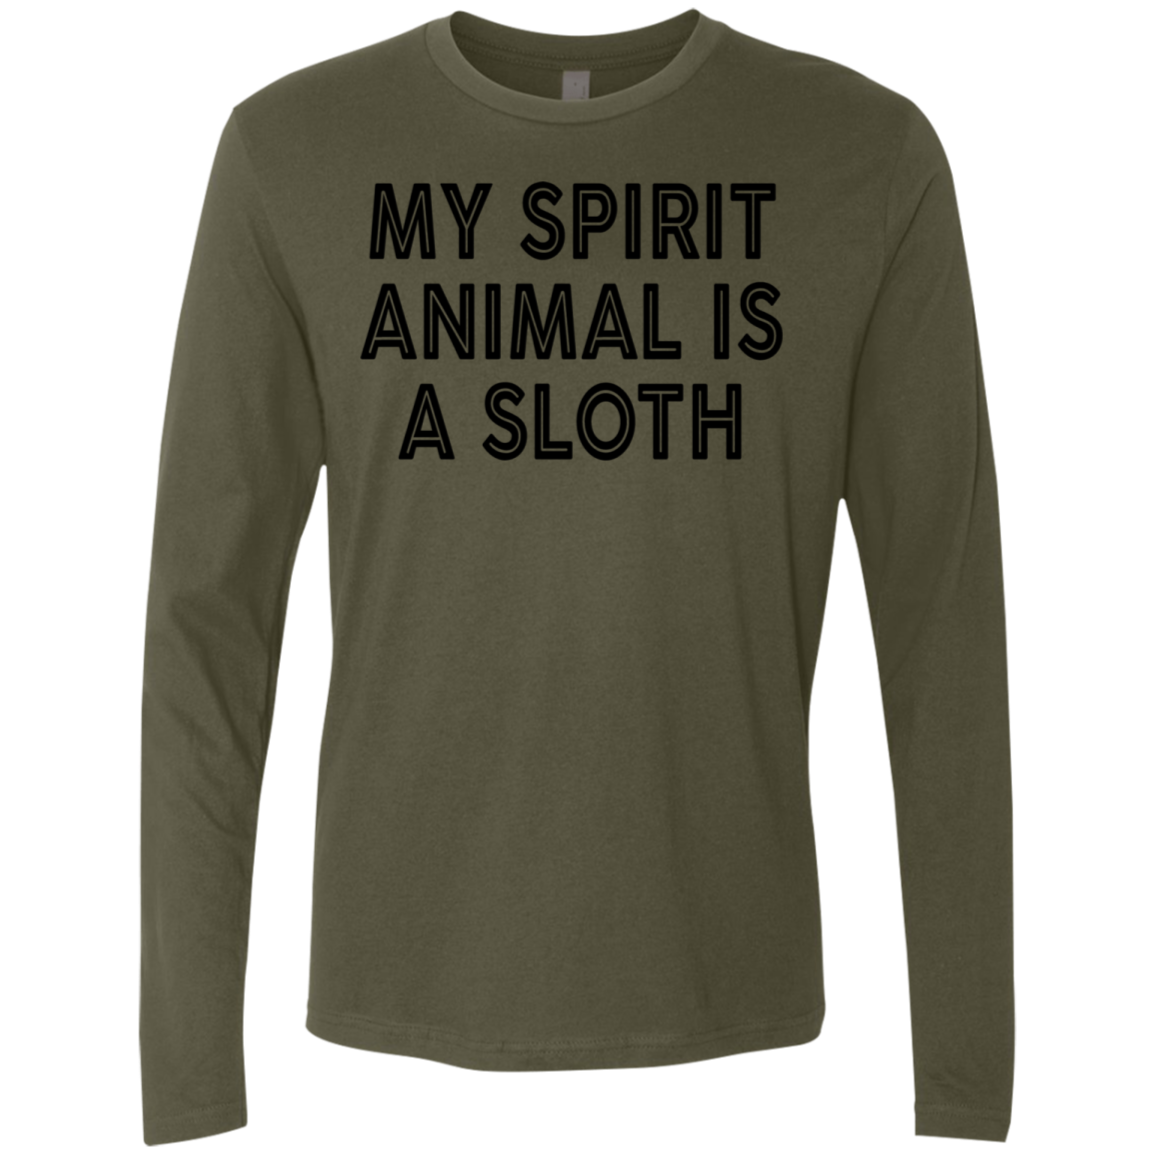 Any Spirit Animal Is A Sloth Men's Long Sleeve Tee